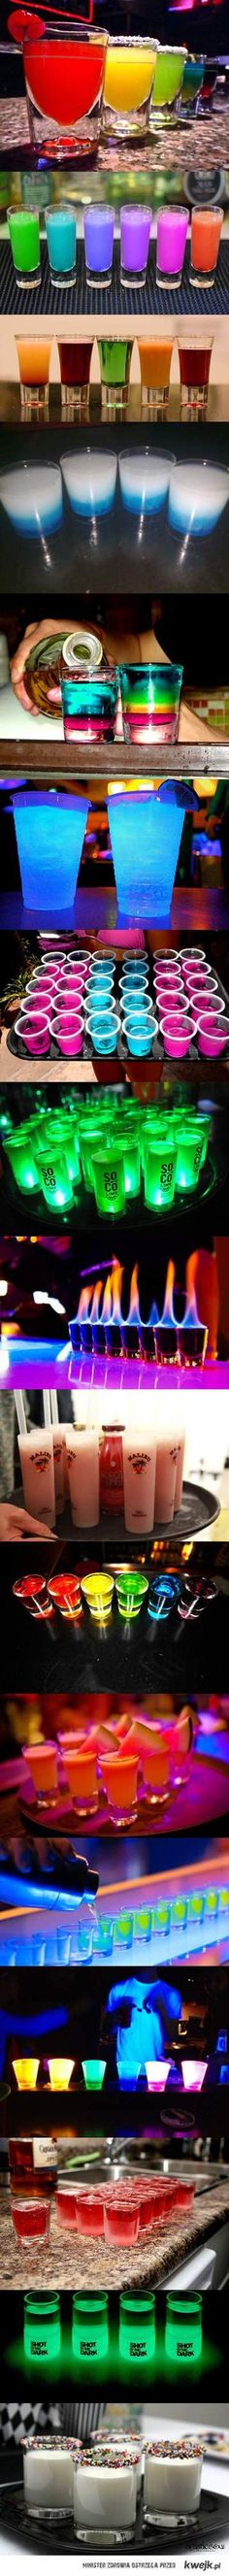 Lots of yummy drink recipes that glow in the dark